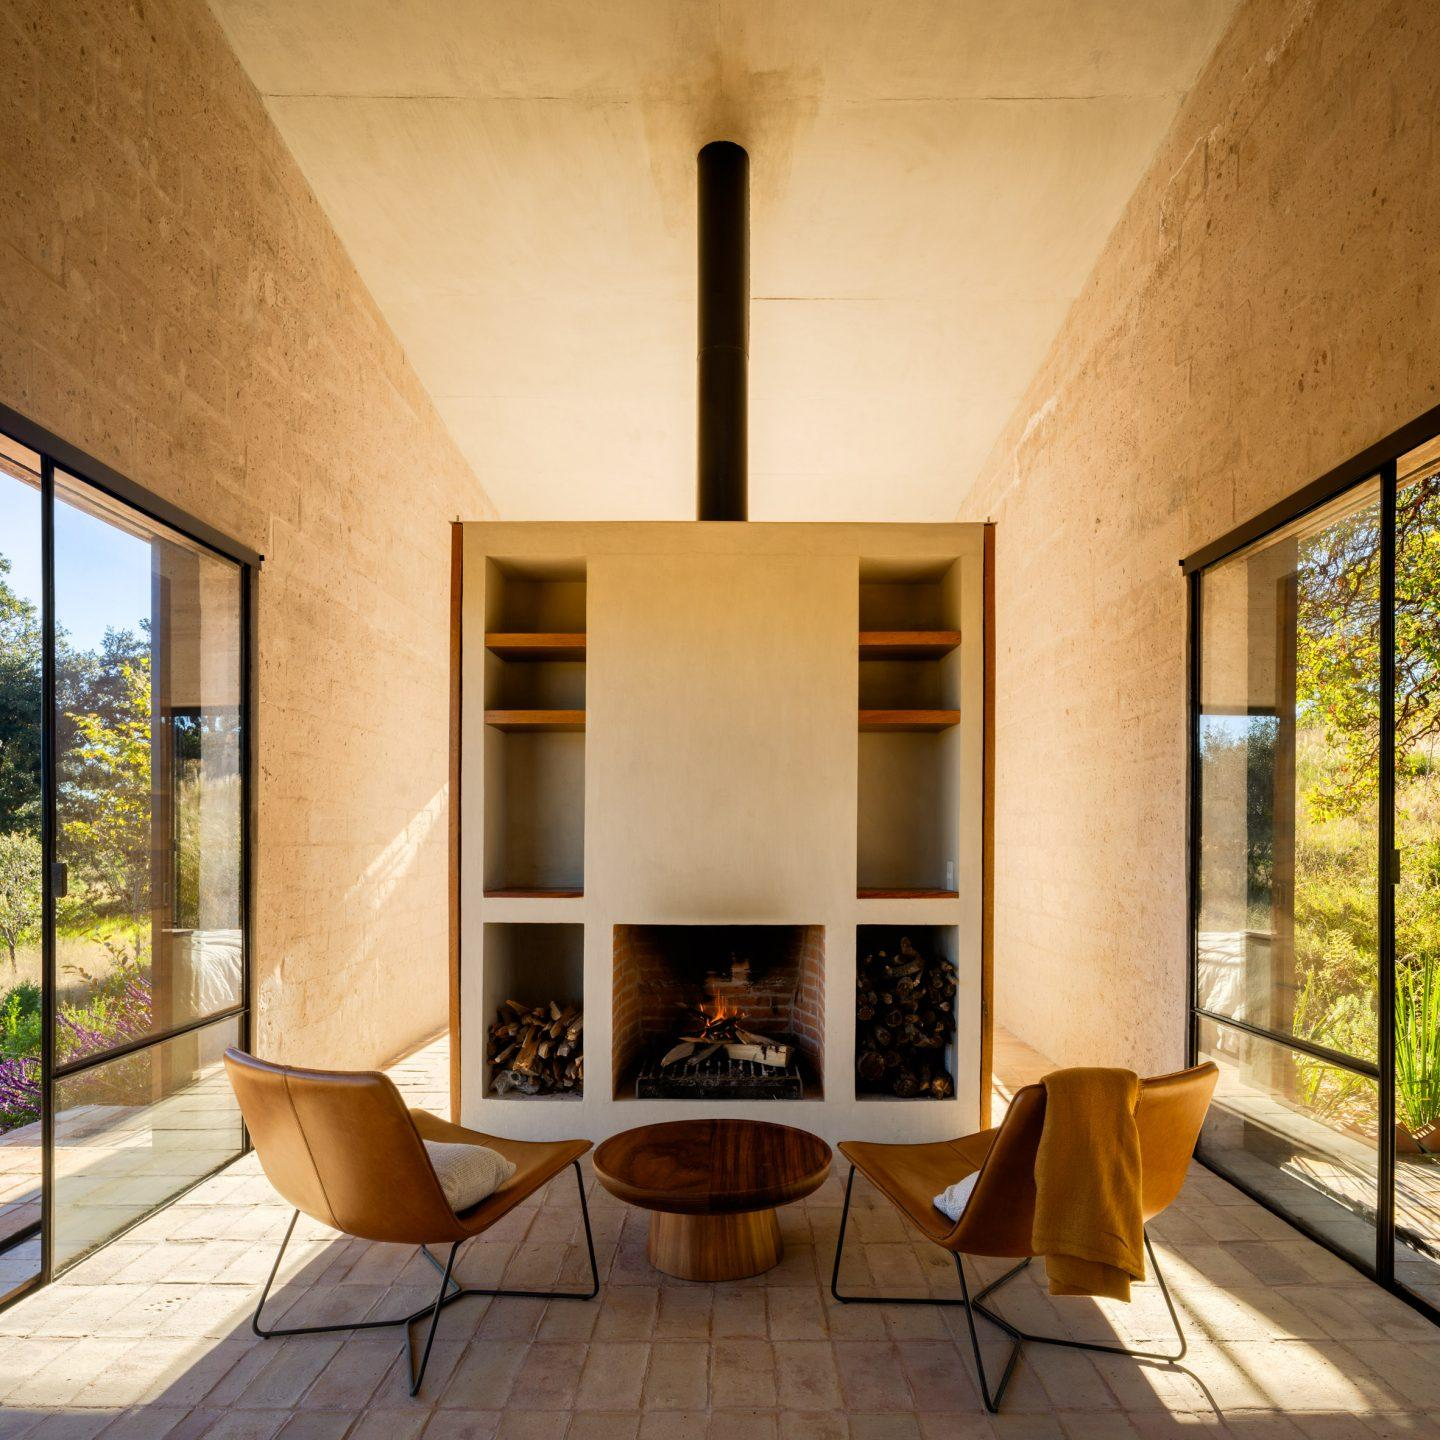 IGNANT-Architecture-PPAA-Arquitectos-Aculco-House-10